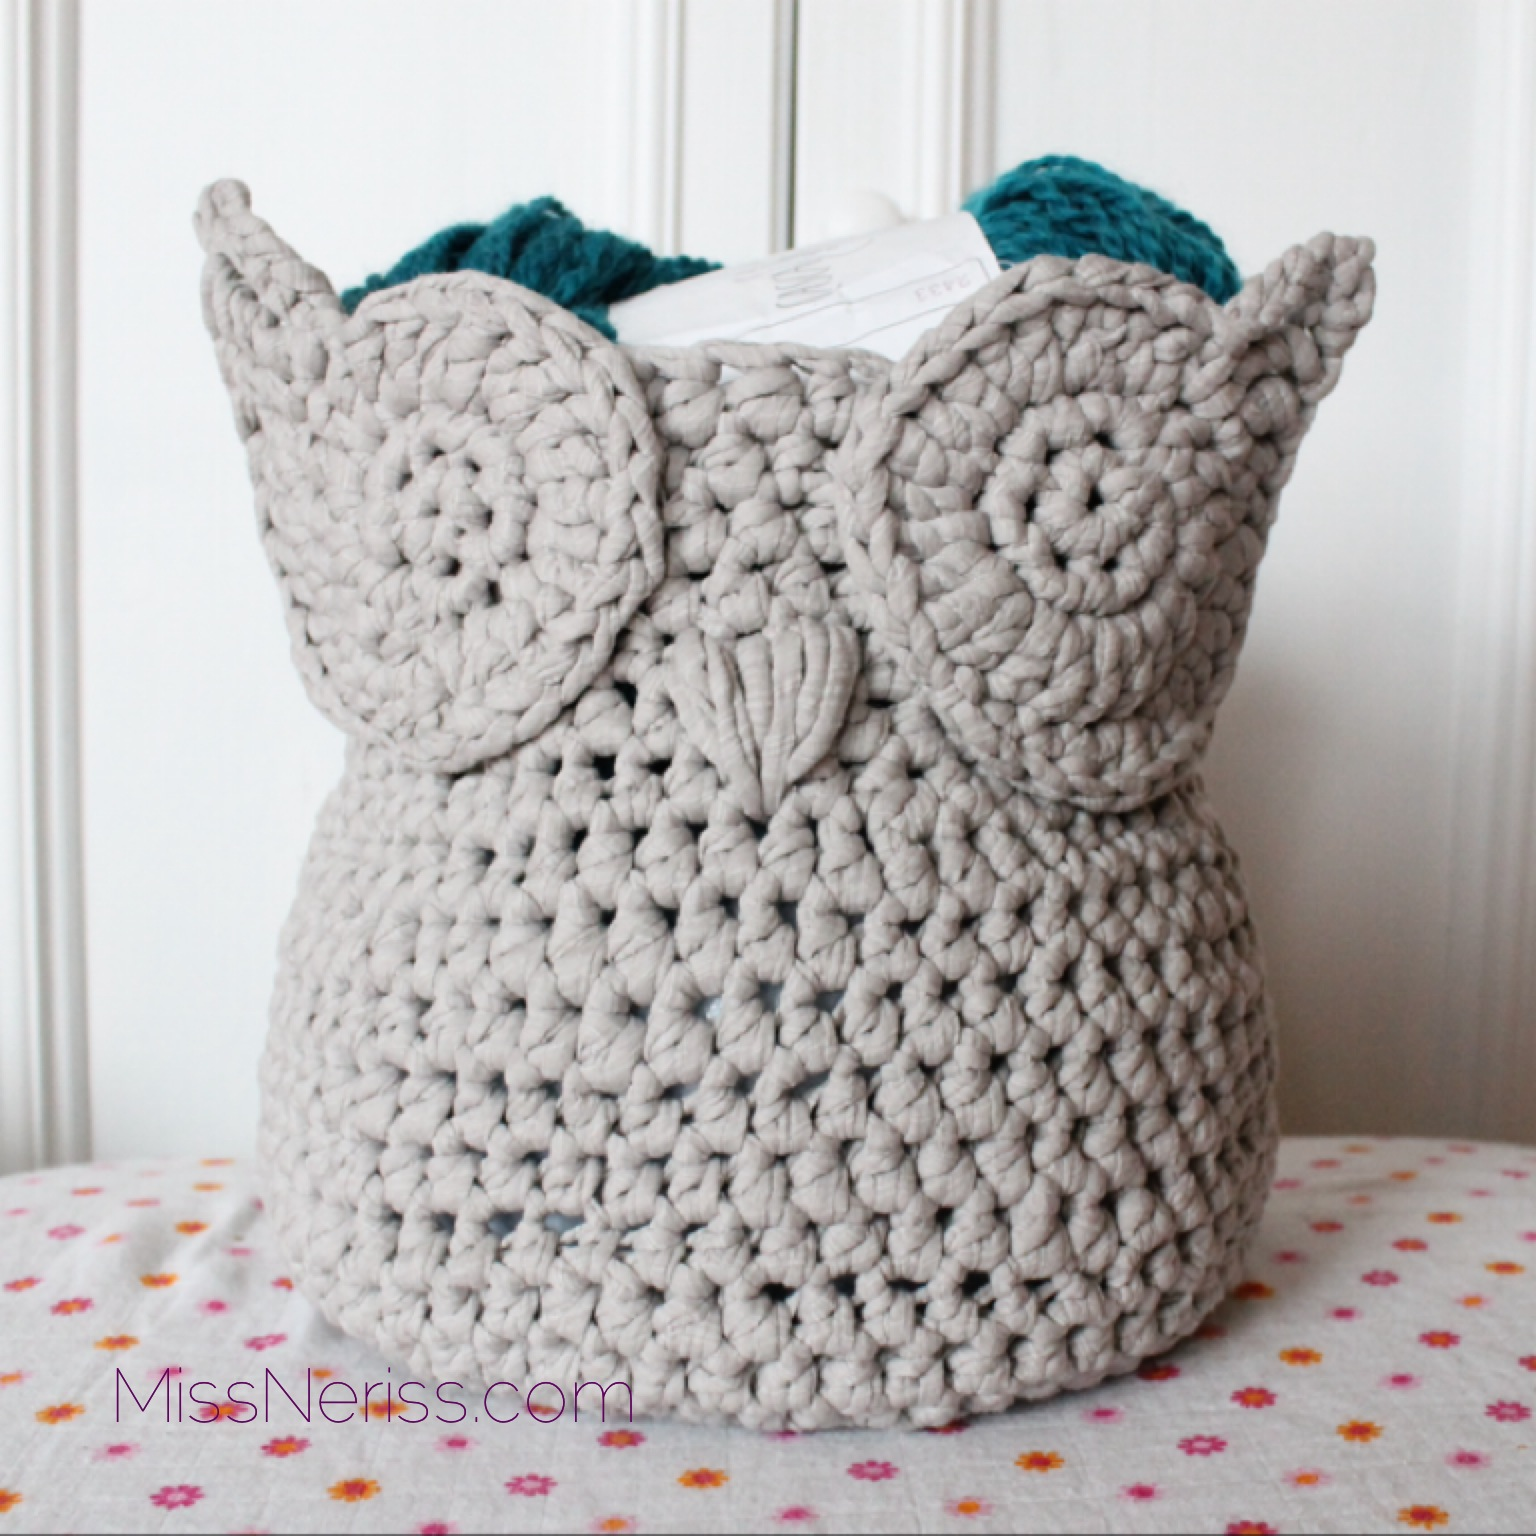 Free Crochet Patterns Zpagetti : This is one of those projects that I am very happy to have finished. I ...